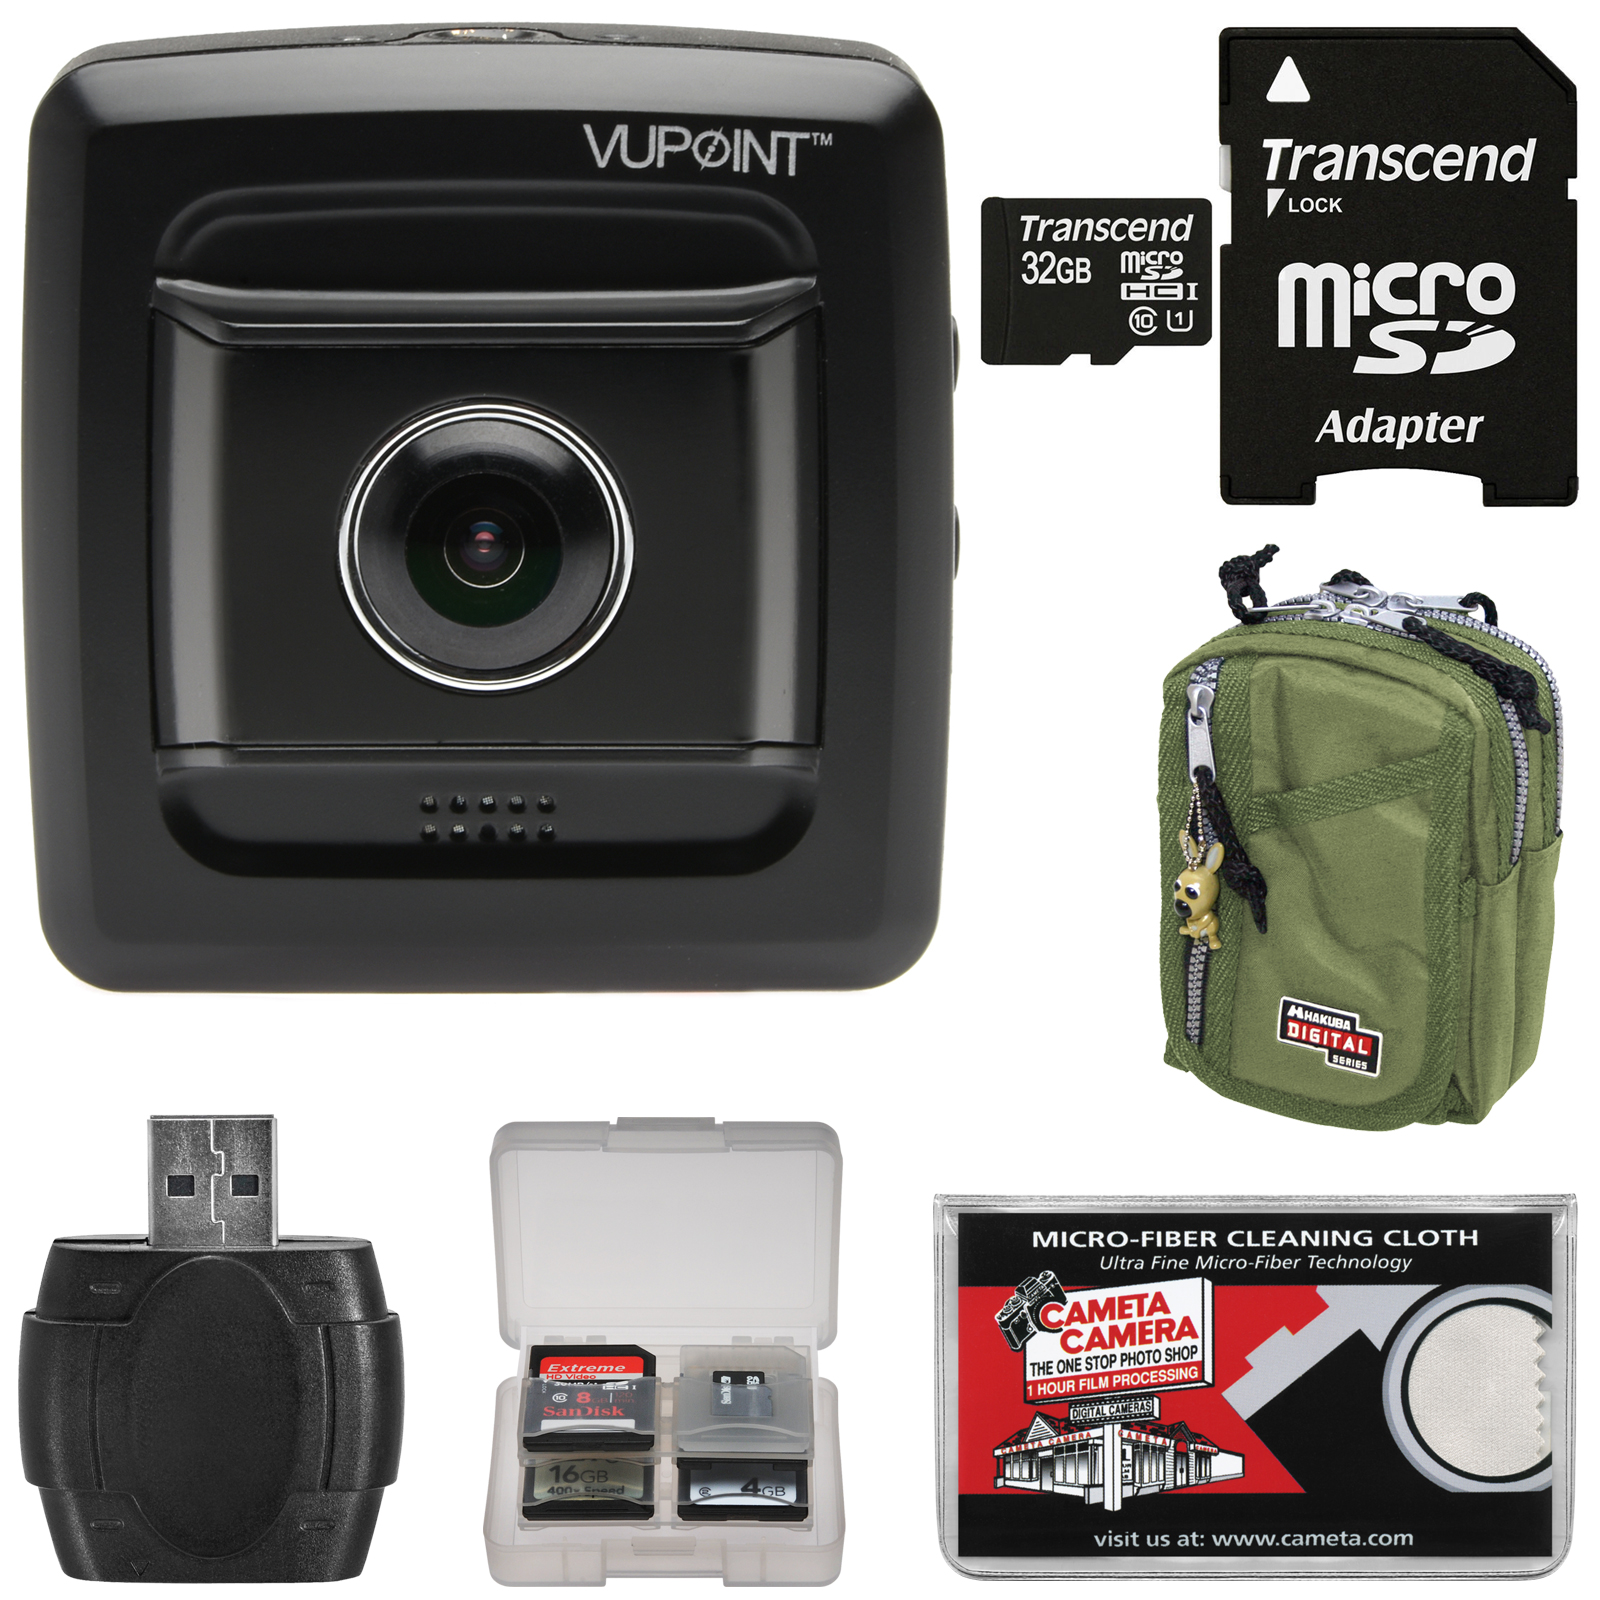 VuPoint Full HD DVR Car Dashboard Video Recorder Camera with G-Sensor & 32GB Card + Case + Kit